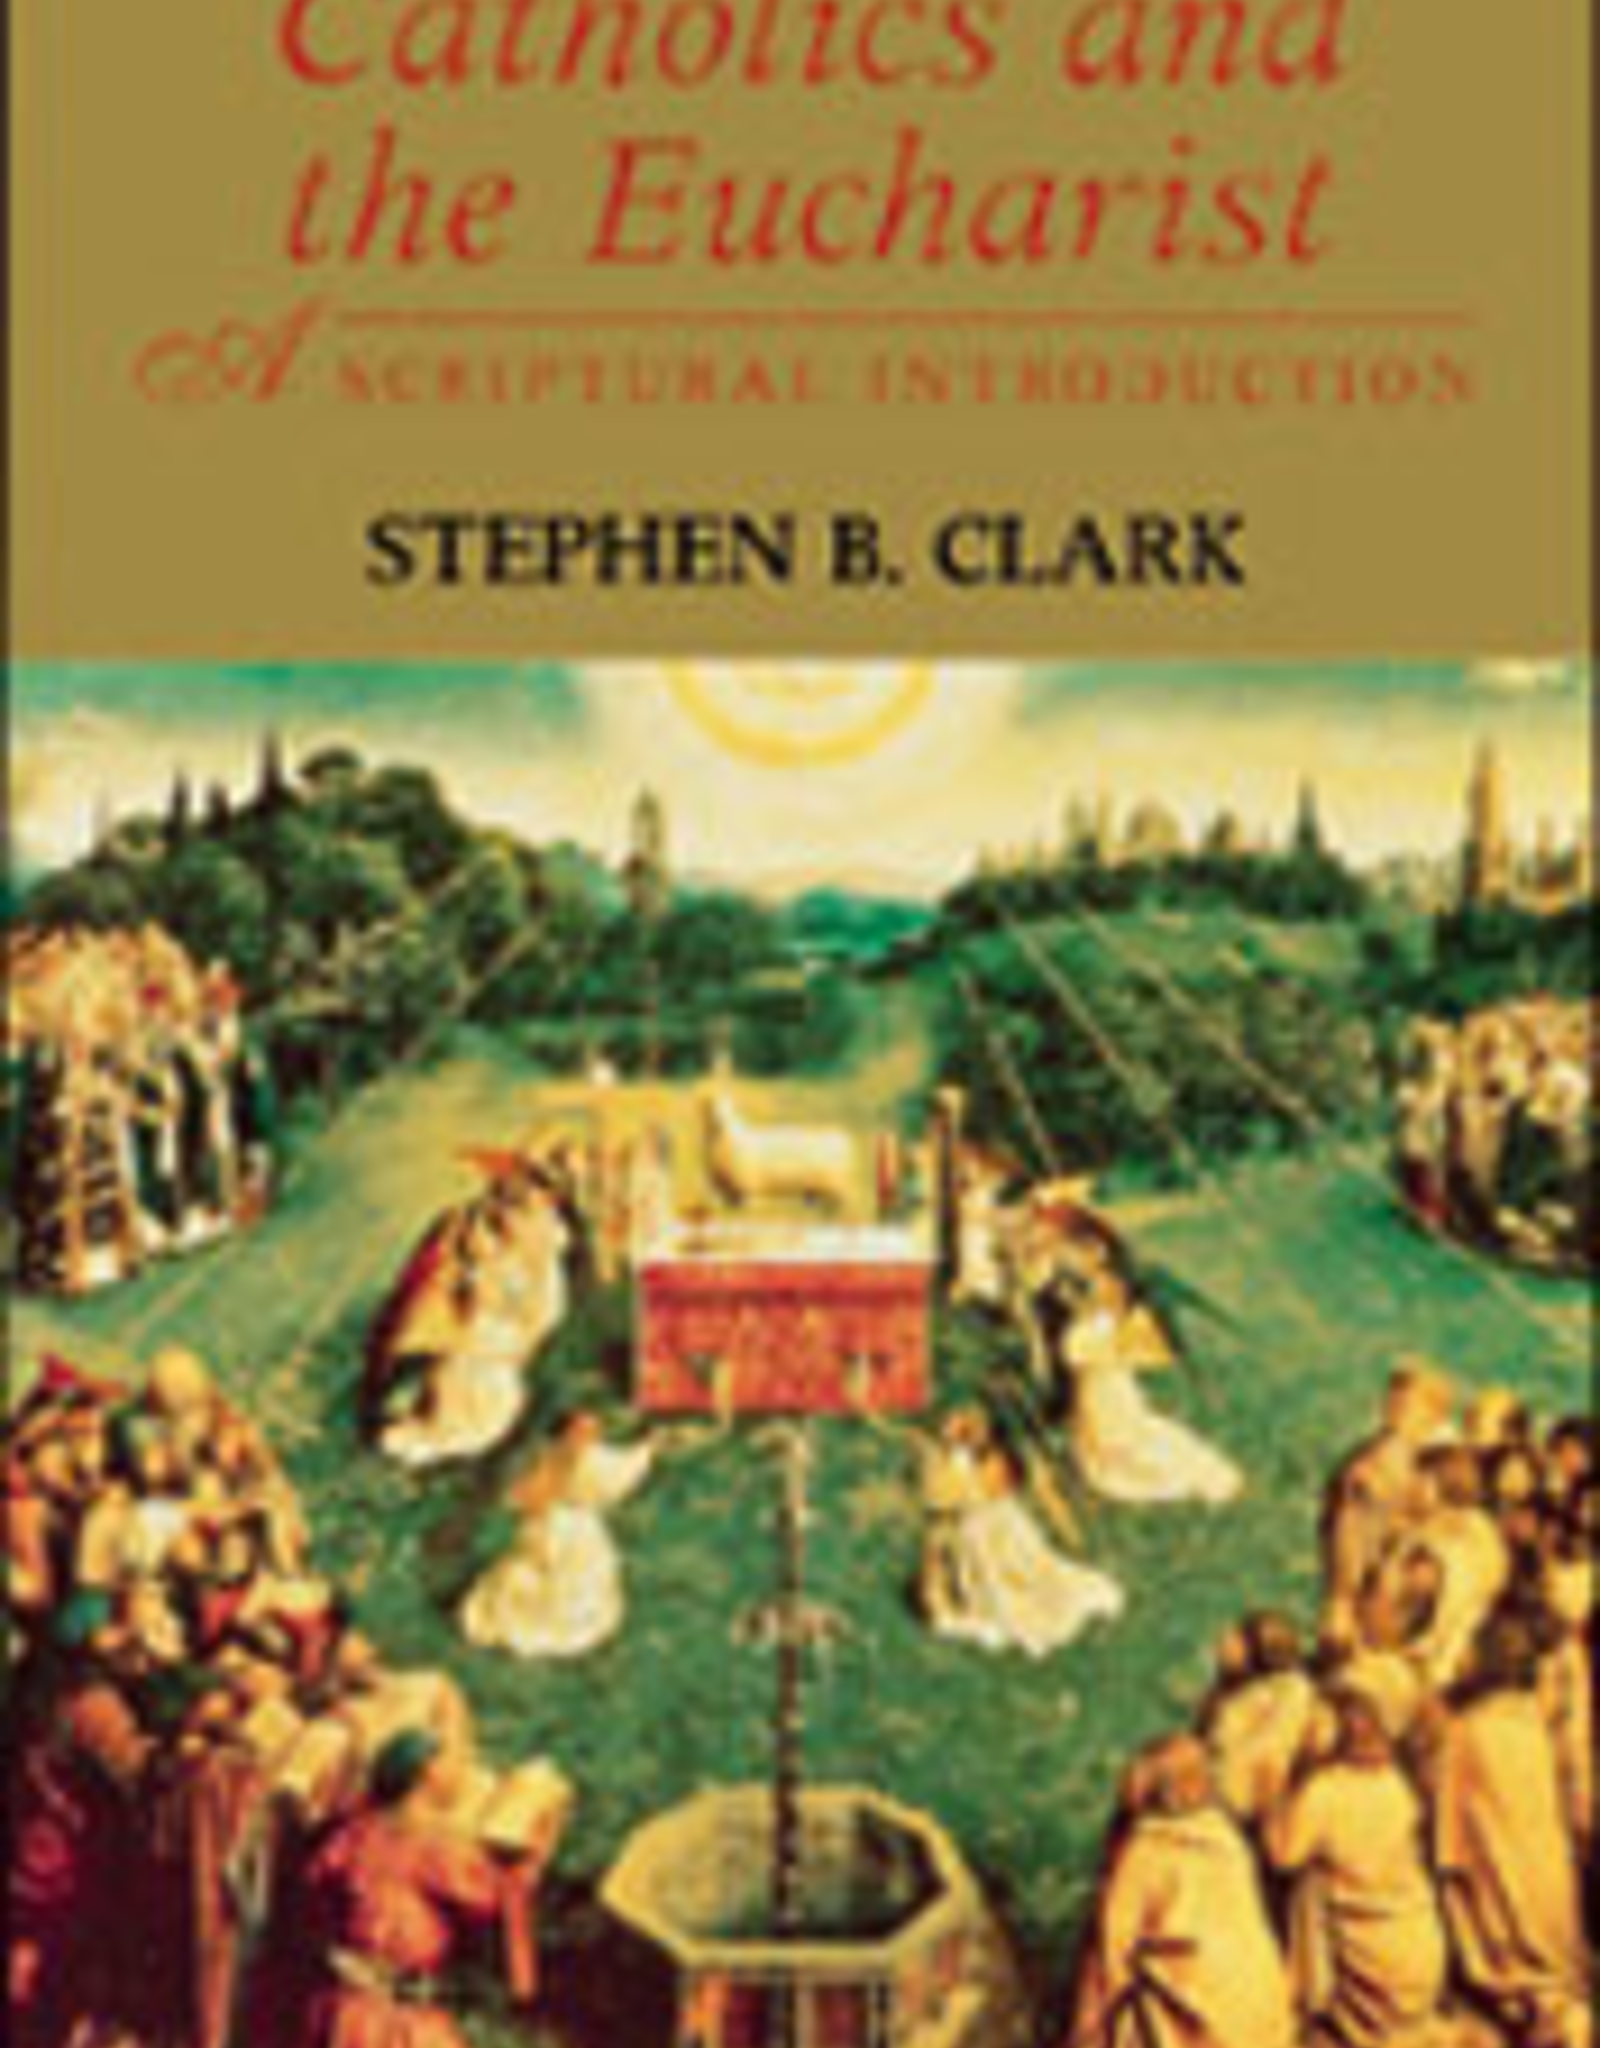 Franciscan Media Catholics and the Eucharist:  A Spiritual Introduction, by Stephen B. Clark (paperback)